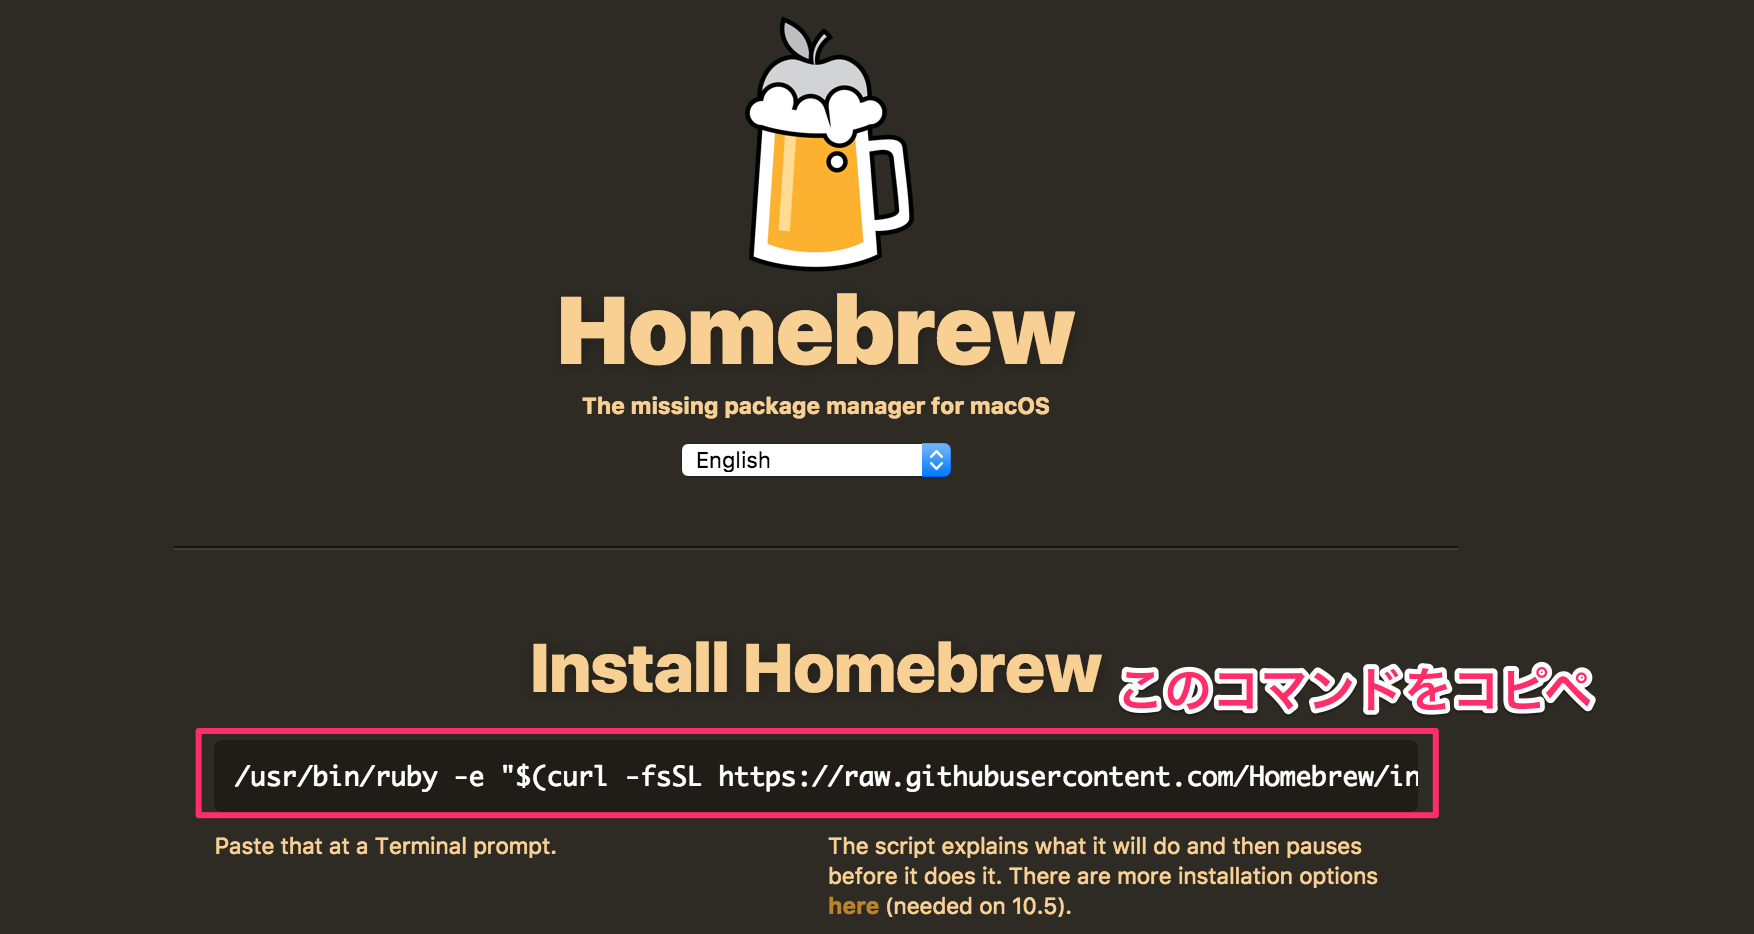 Homebrew_—_The_missing_package_manager_for_macOS.png